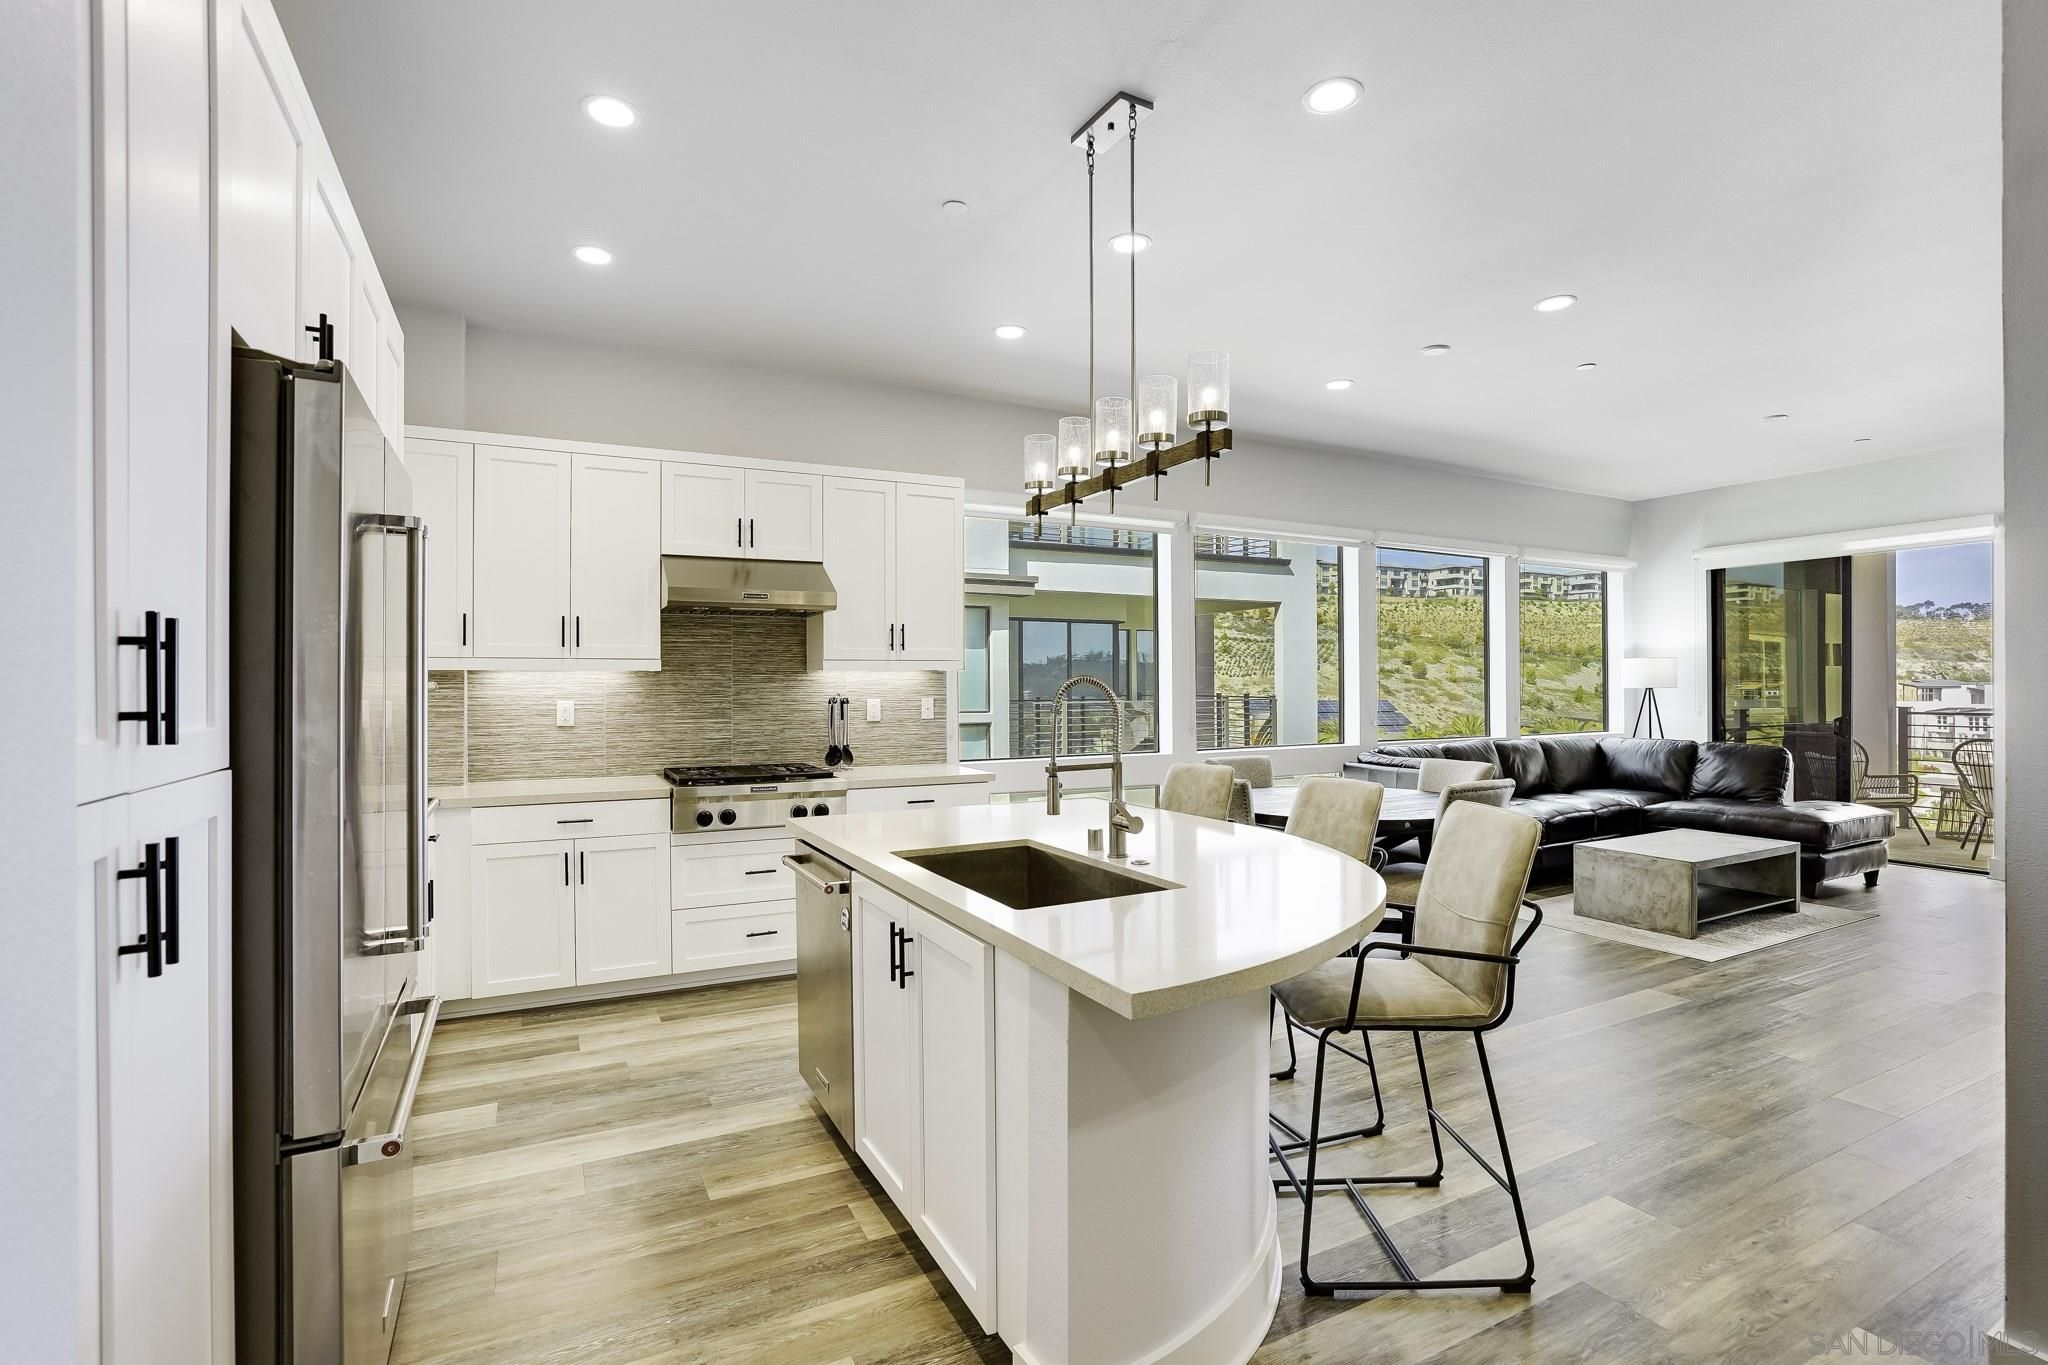 Main Photo: MISSION VALLEY Condo for sale : 2 bedrooms : 8549 Aspect Dr. in San Diego